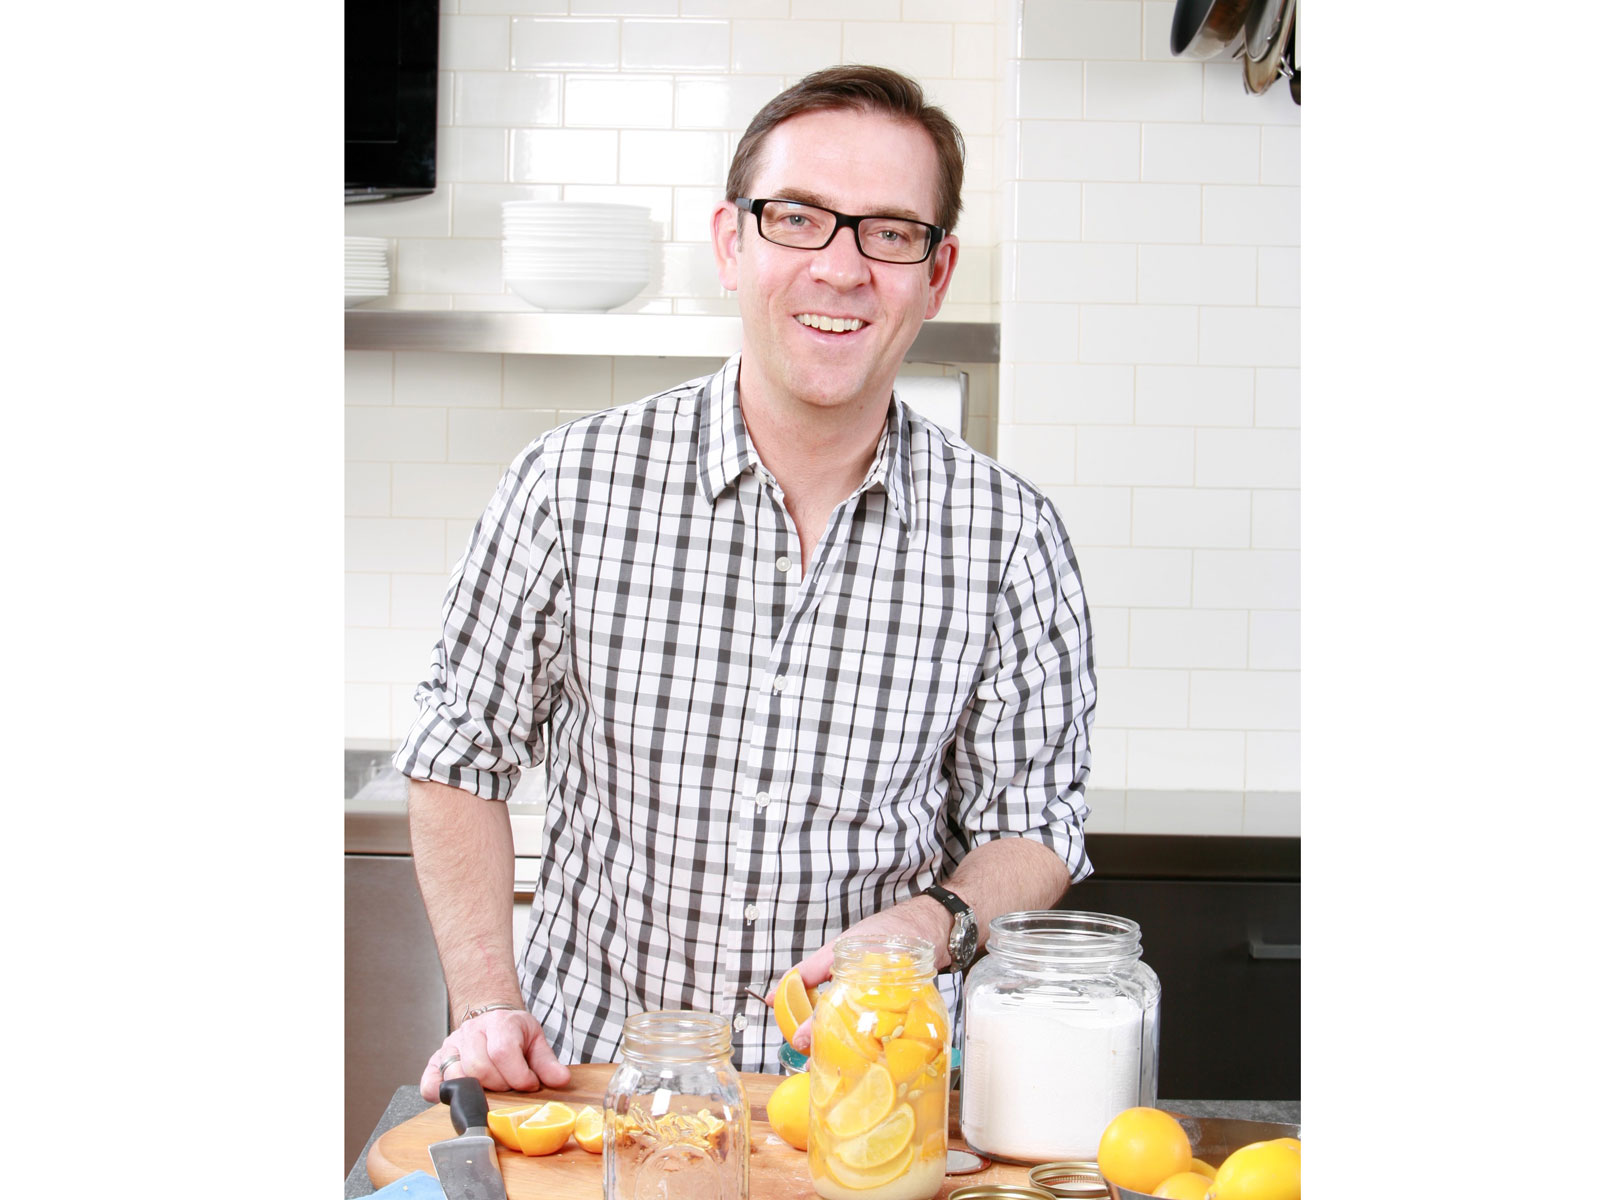 Ted-Allen-Kitchen-FT-BLOG0519.jpg